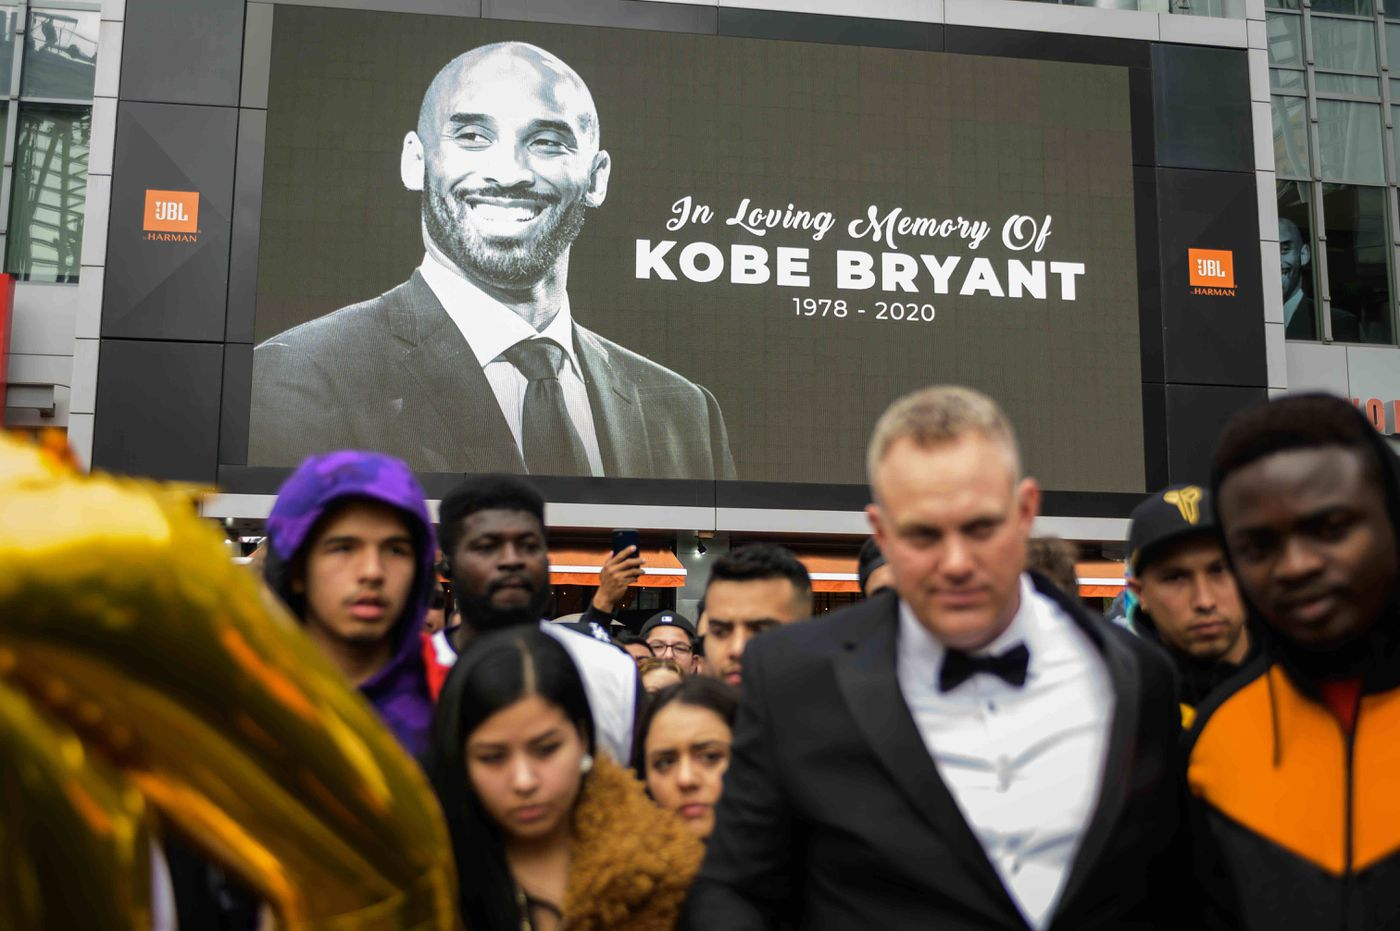 Fans meet at L.A. Live in Downtown Los Angeles to mourn the loss of Los Angeles Lakers basketball legend Kobe Bryant, 41, and daughter Gianna, 13, on Sunday.